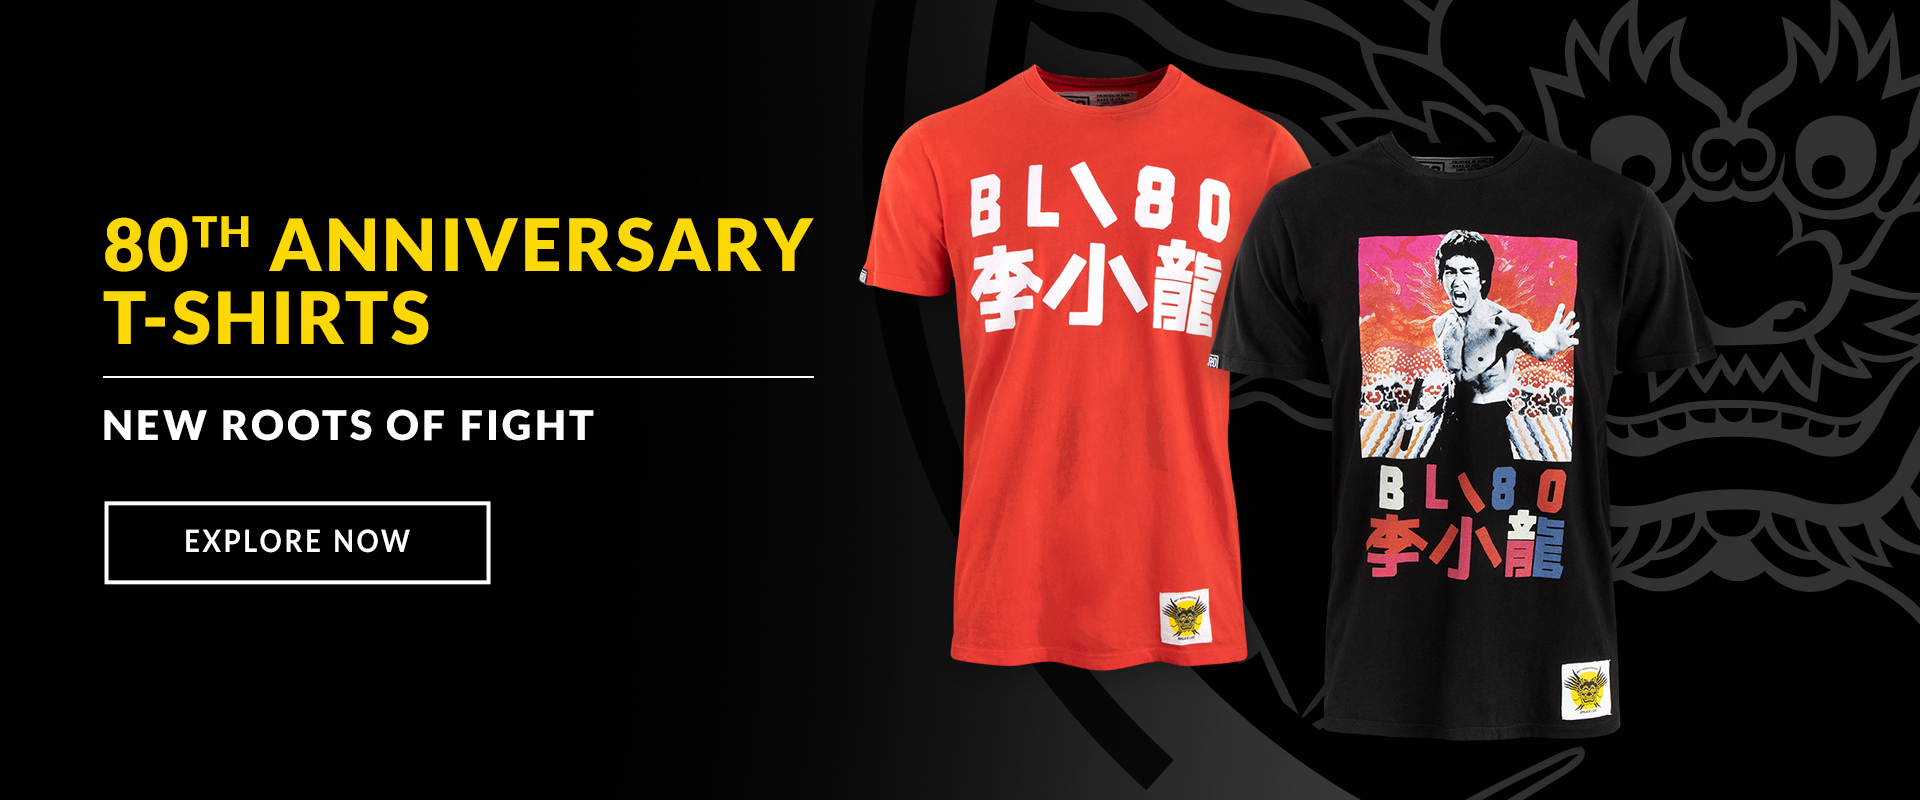 Bruce Lee 80th Anniversary Roots of Fight Shirts